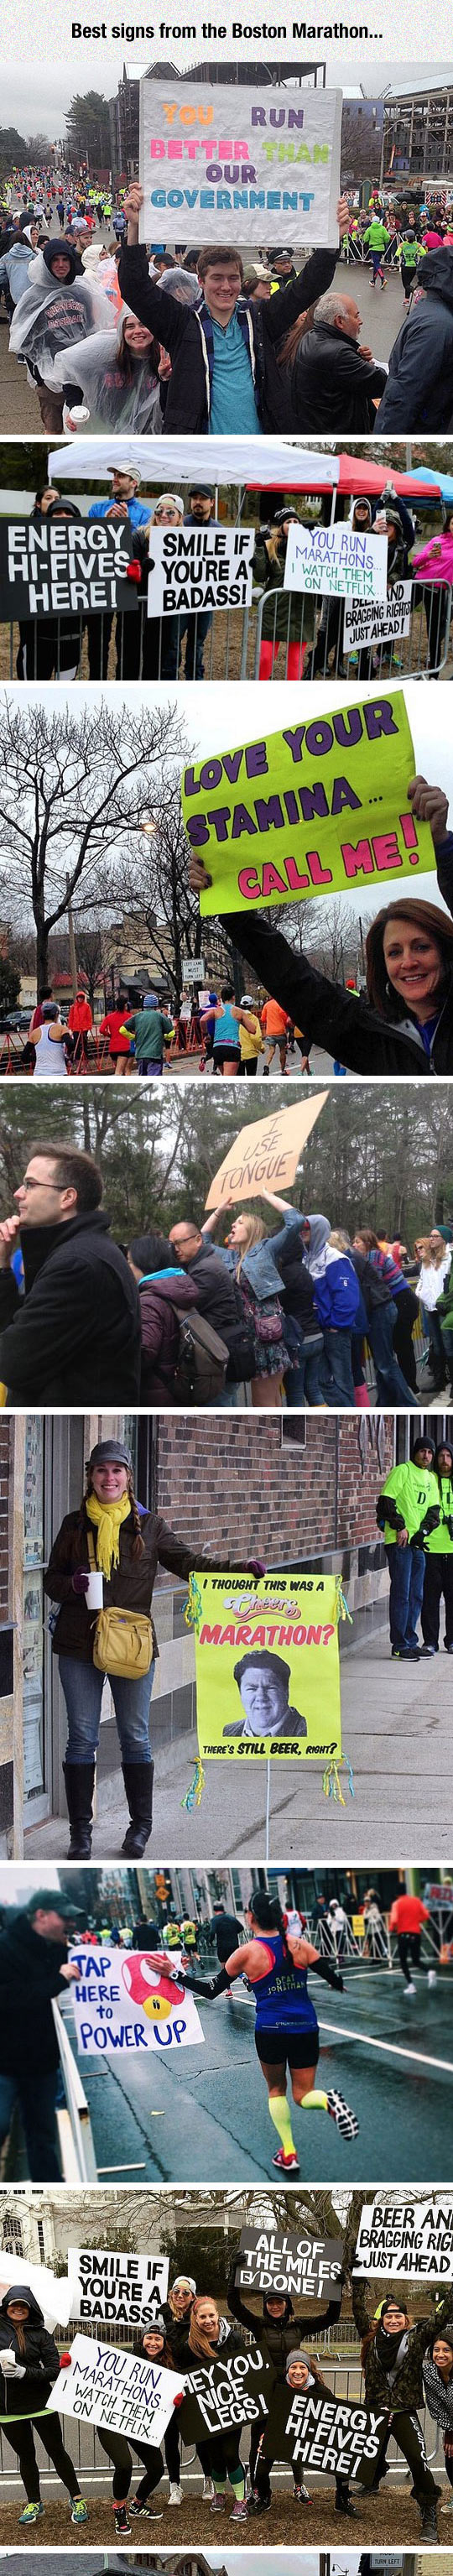 funny-Boston-marathon-signs-crowd